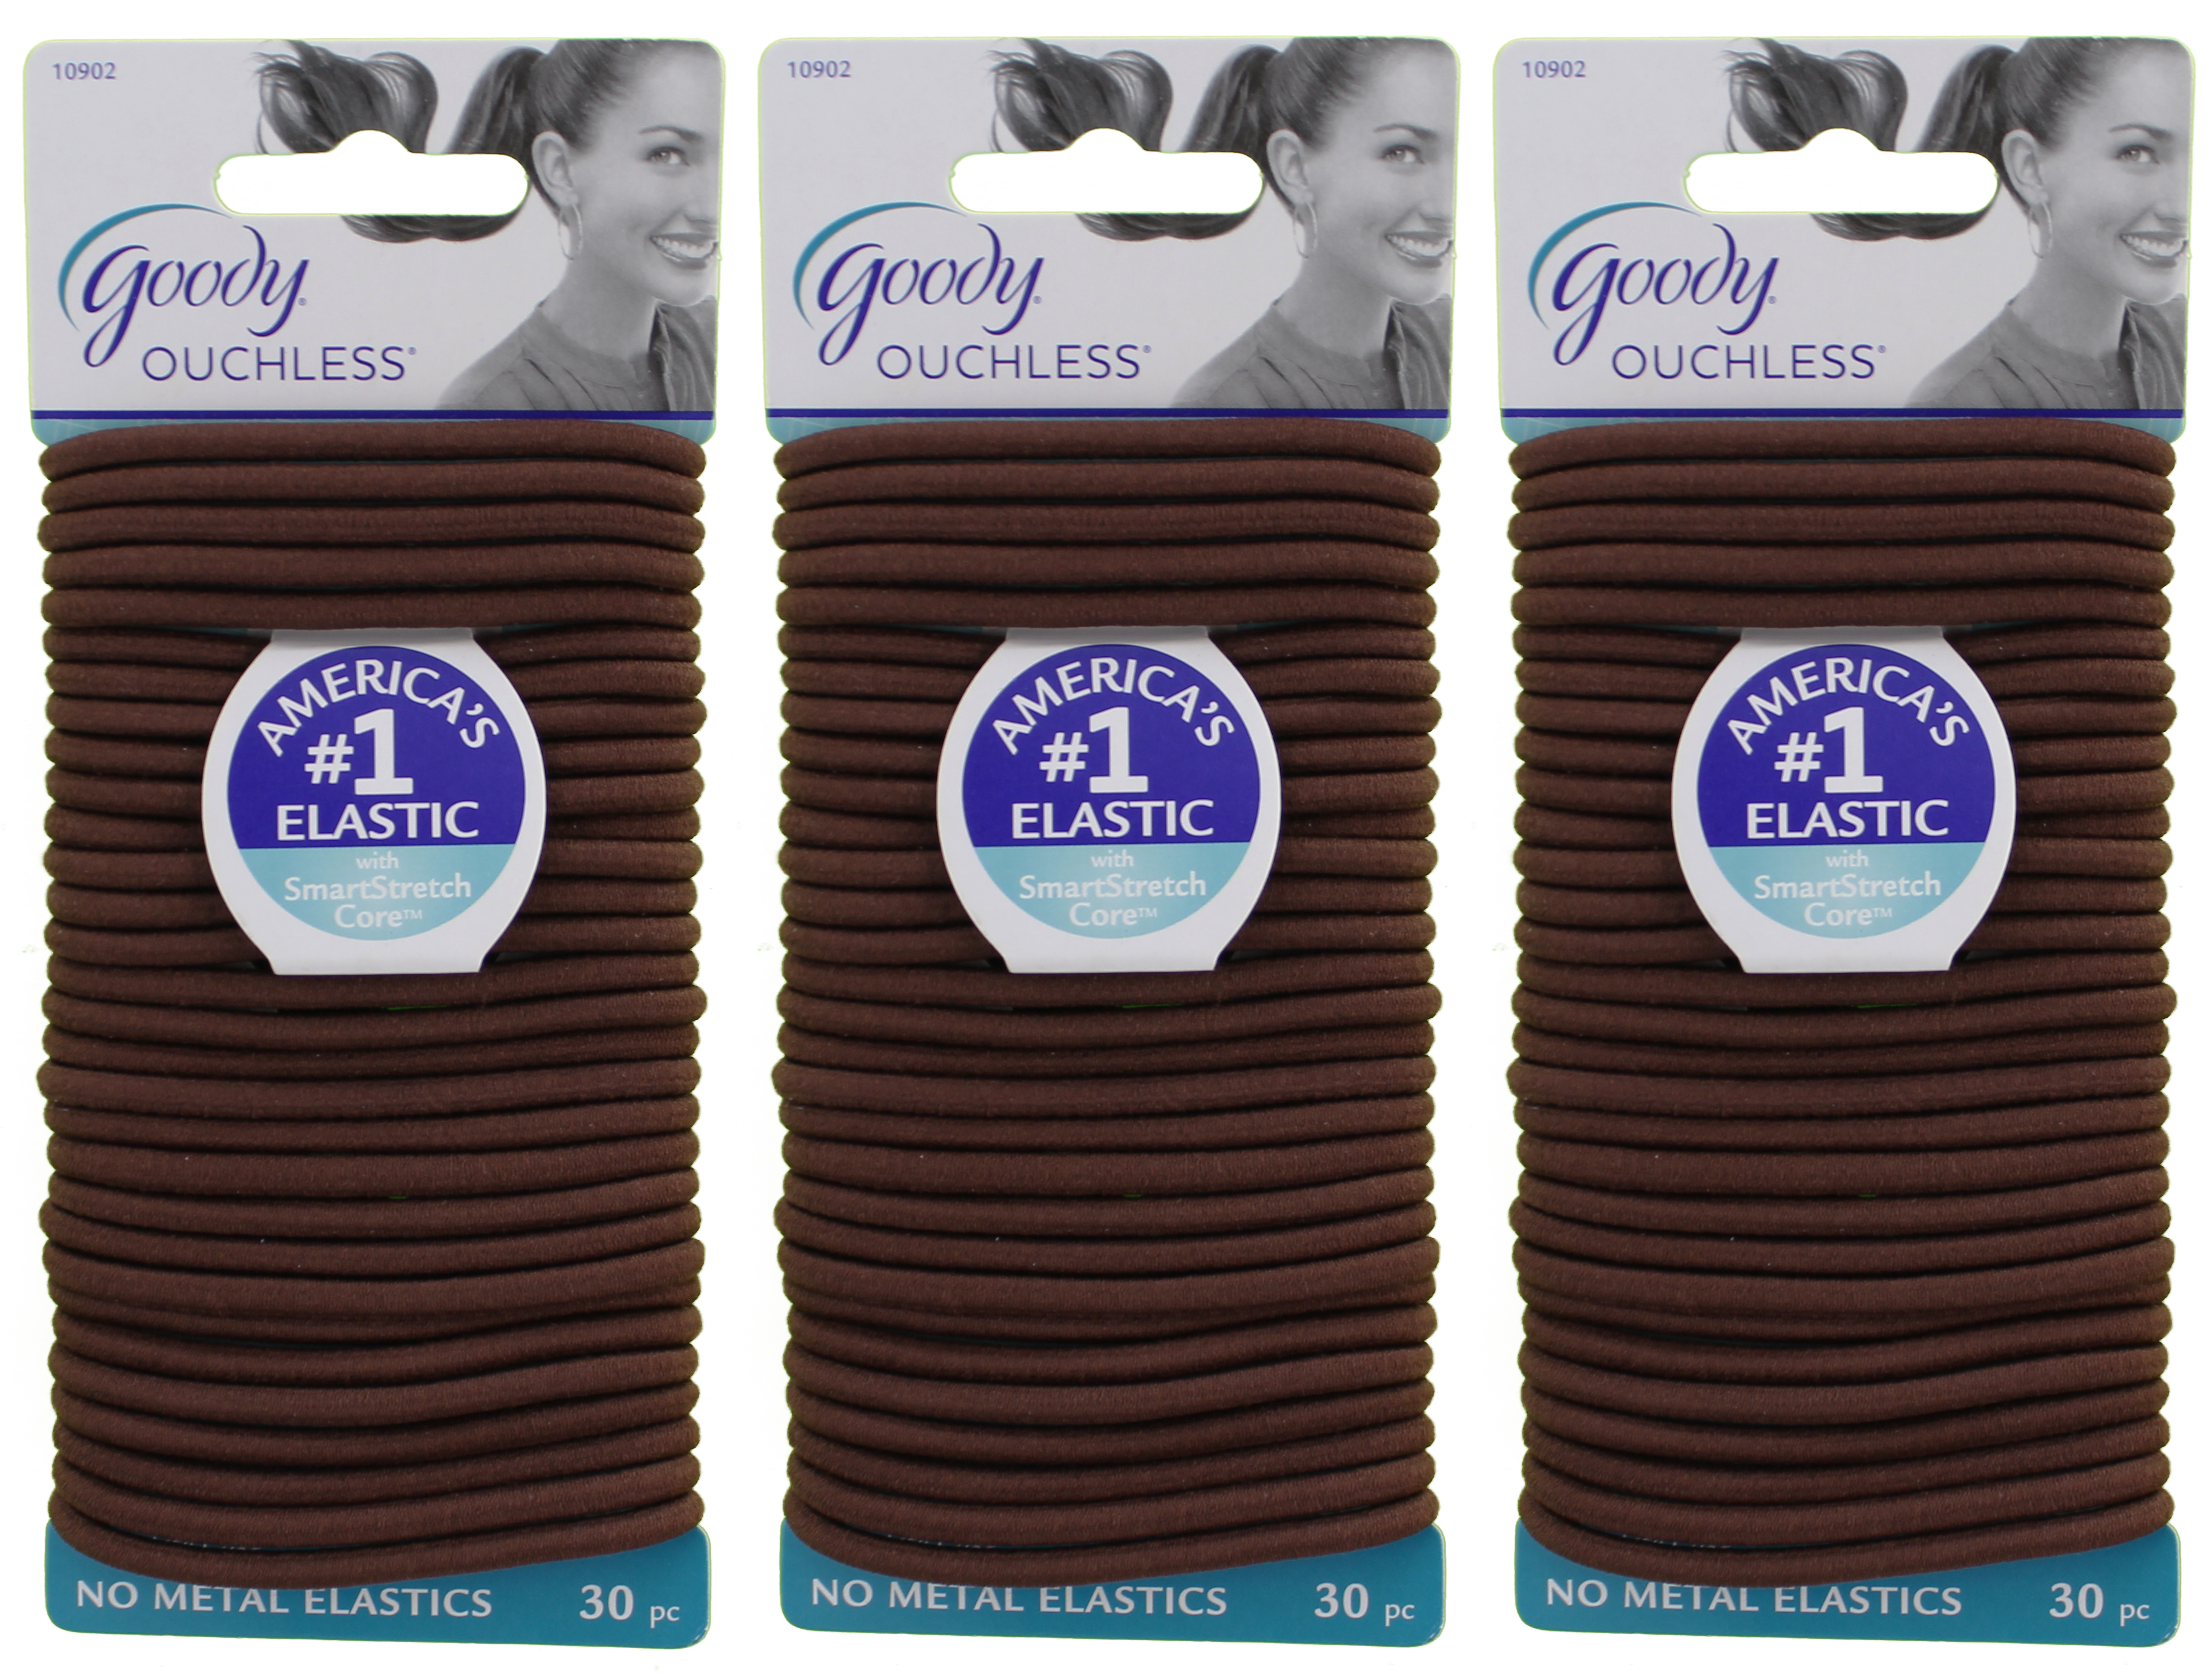 Goody Ouchless Braided Elastics, Brown, 30 Count